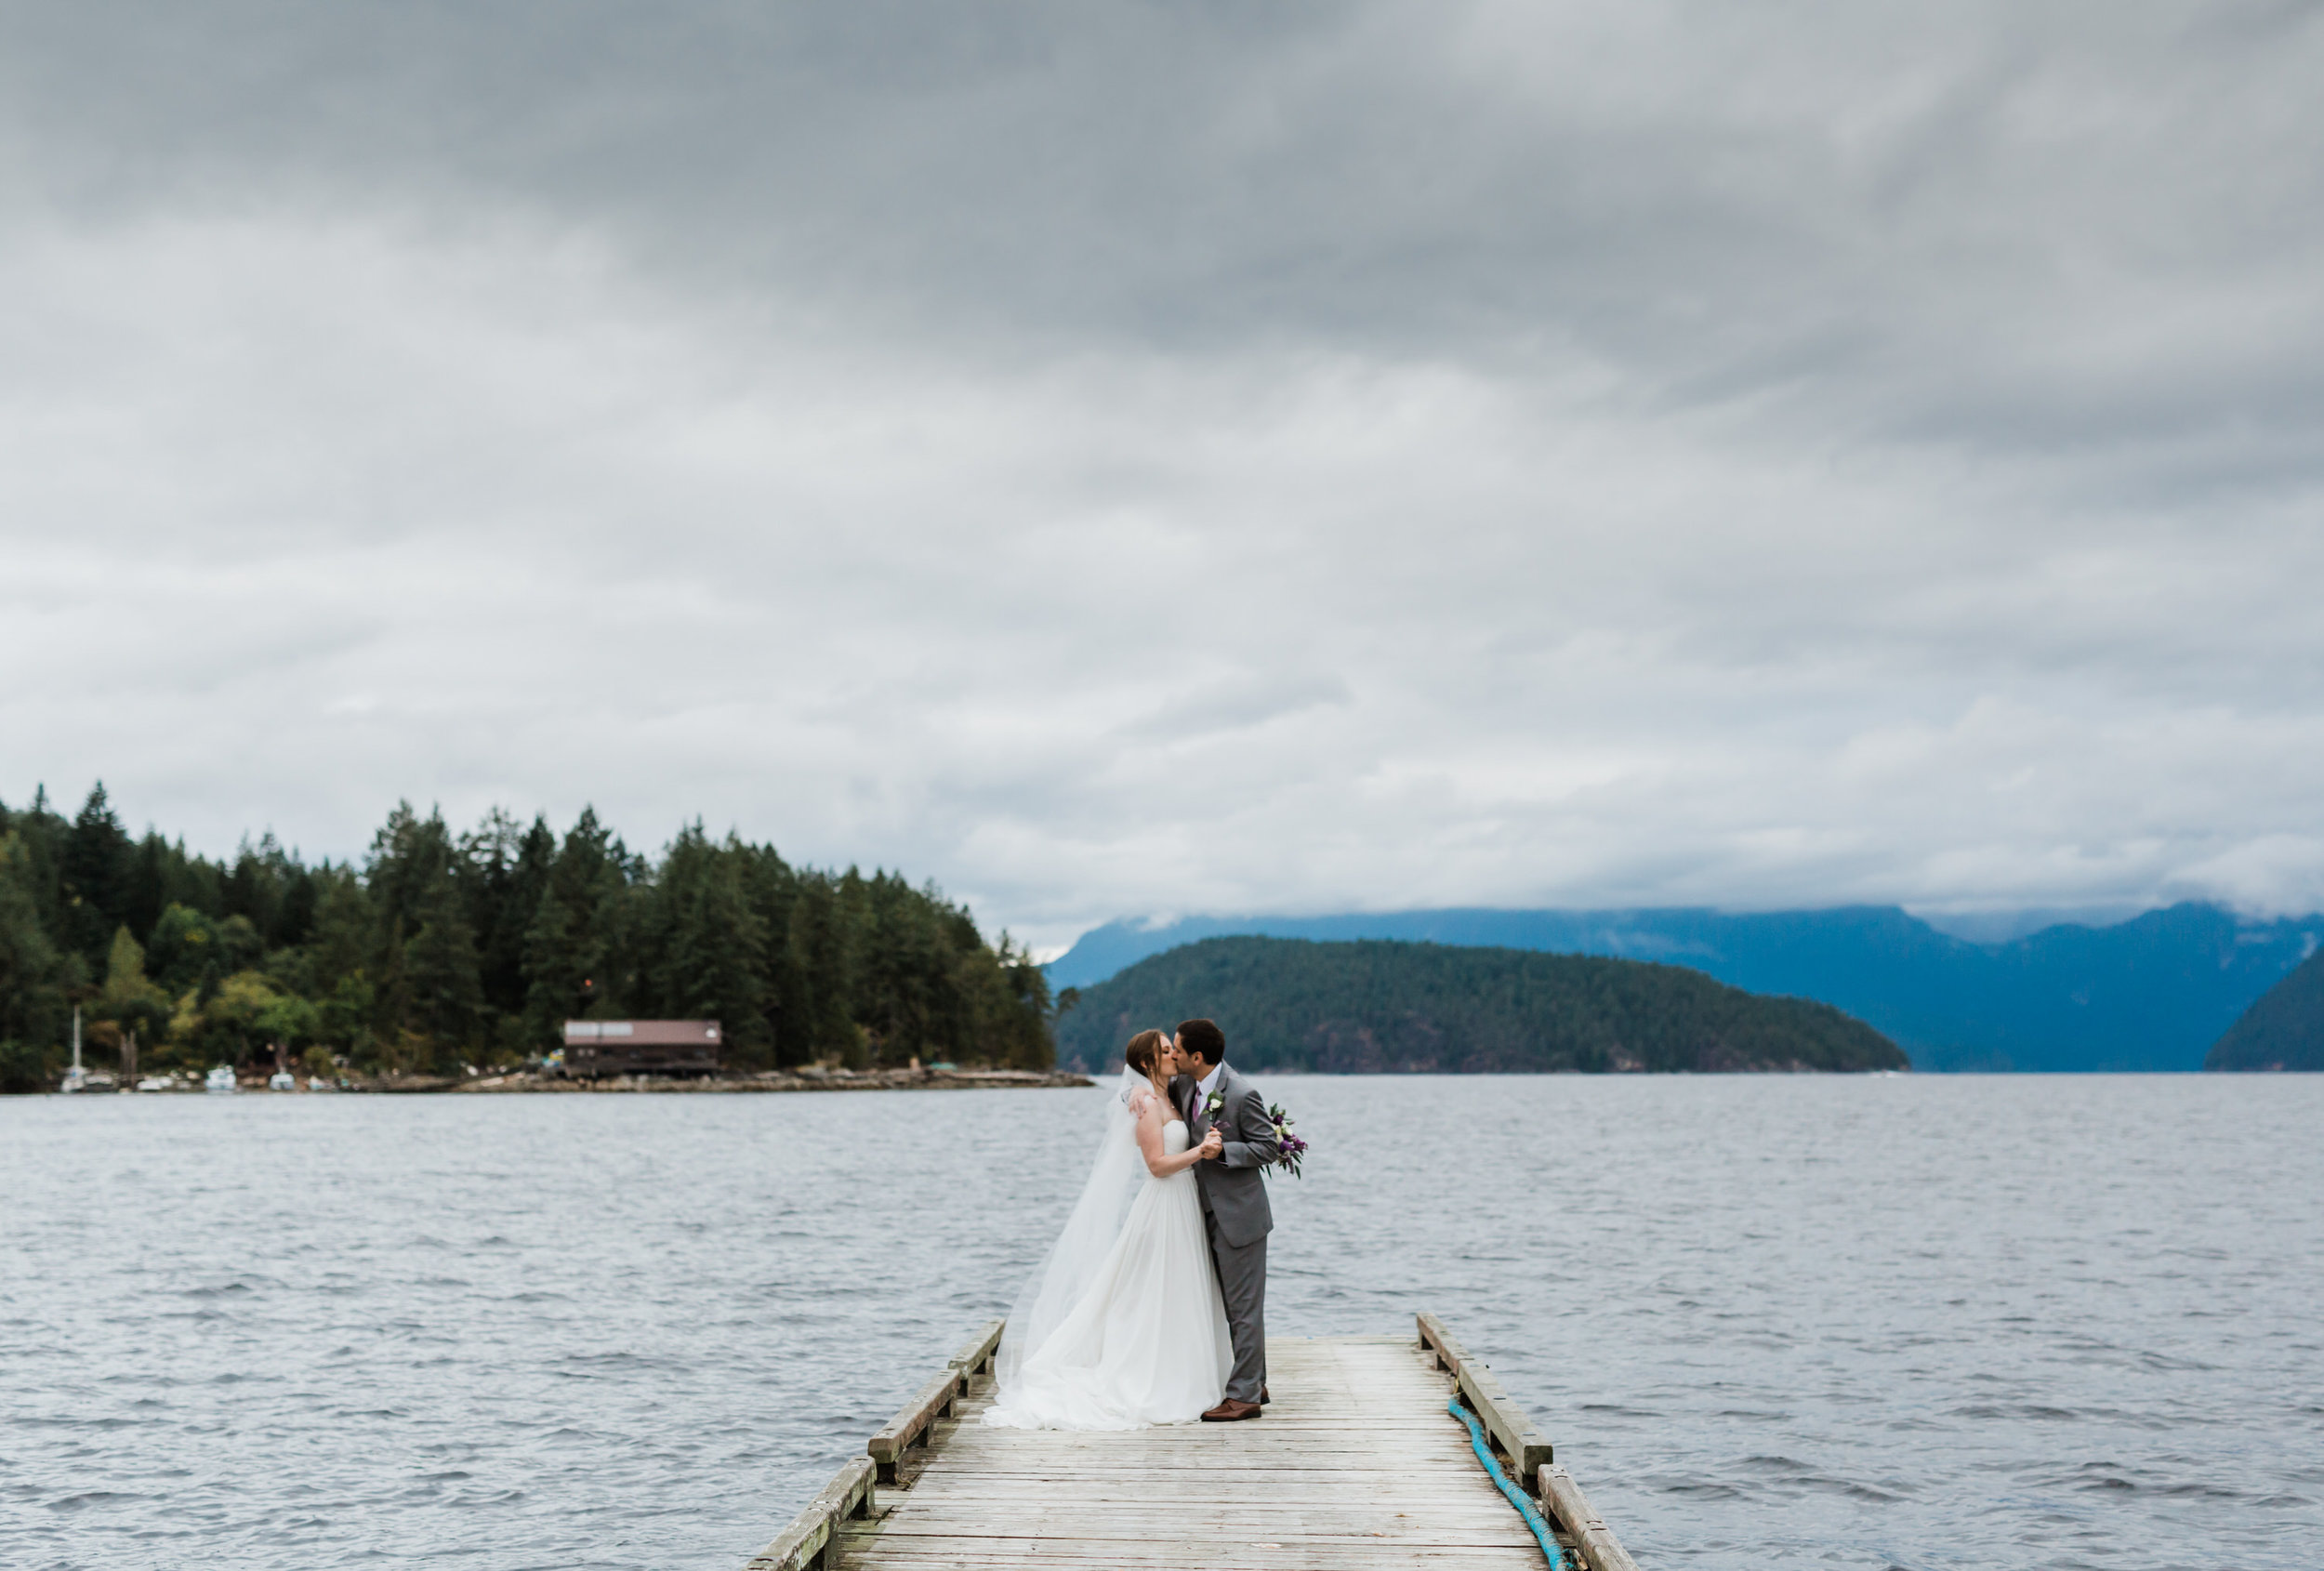 West Coast Wilderness Lodge Wedding Photos - Vancouver Wedding Photographer & Videographer - Sunshine Coast Wedding Photos - Sunshine Coast Wedding Photographer - Jennifer Picard Photography - IMG_6294.jpg